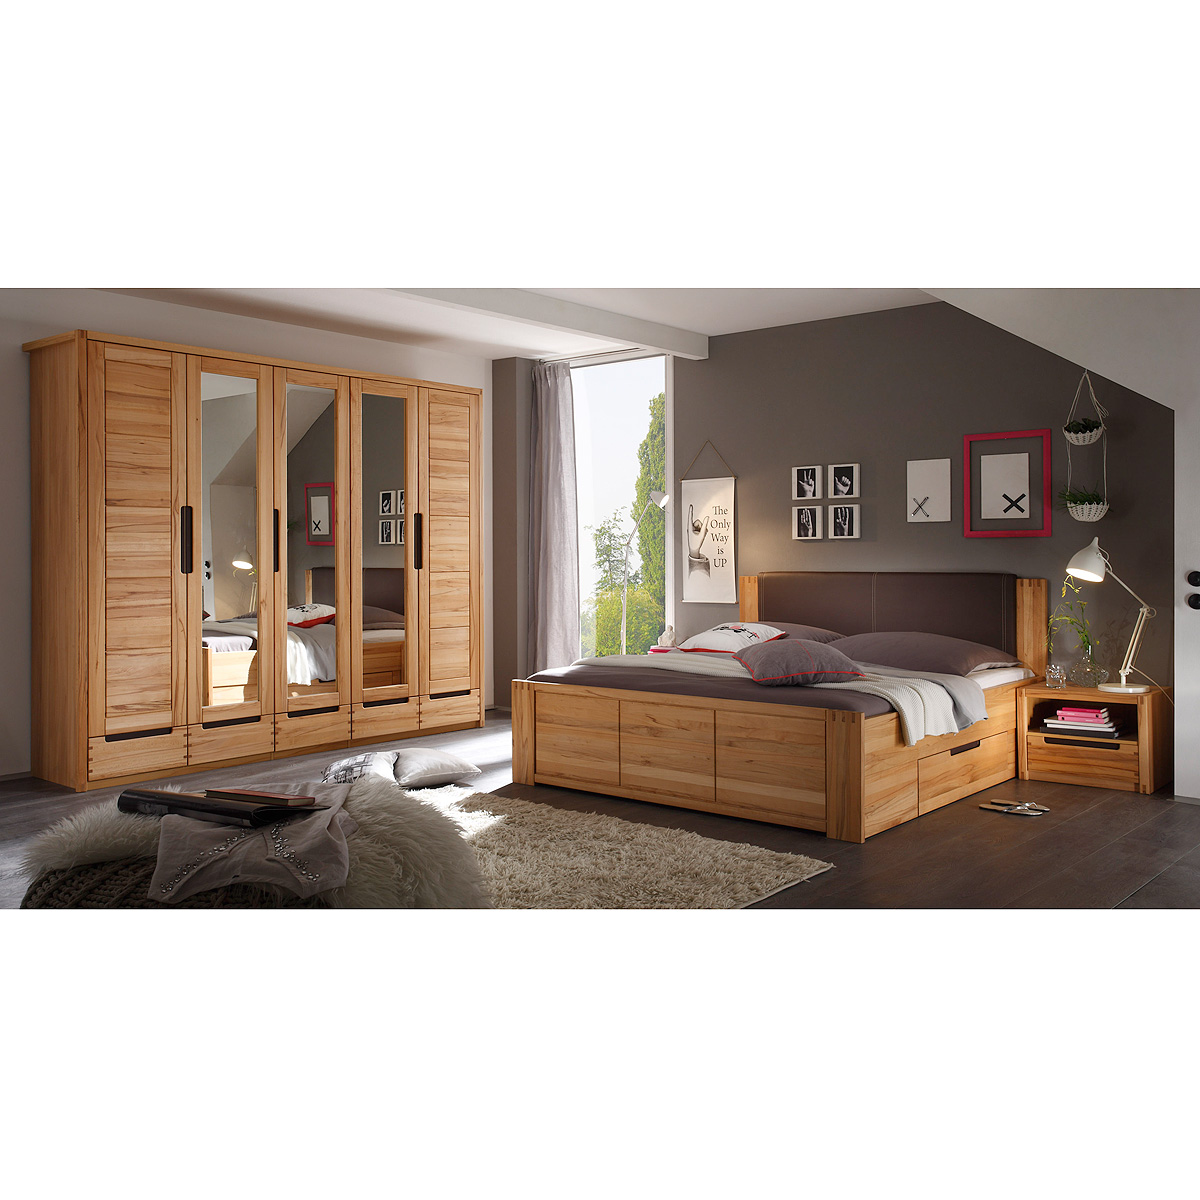 schlafzimmer colorado schrank bett nako set kernbuche. Black Bedroom Furniture Sets. Home Design Ideas